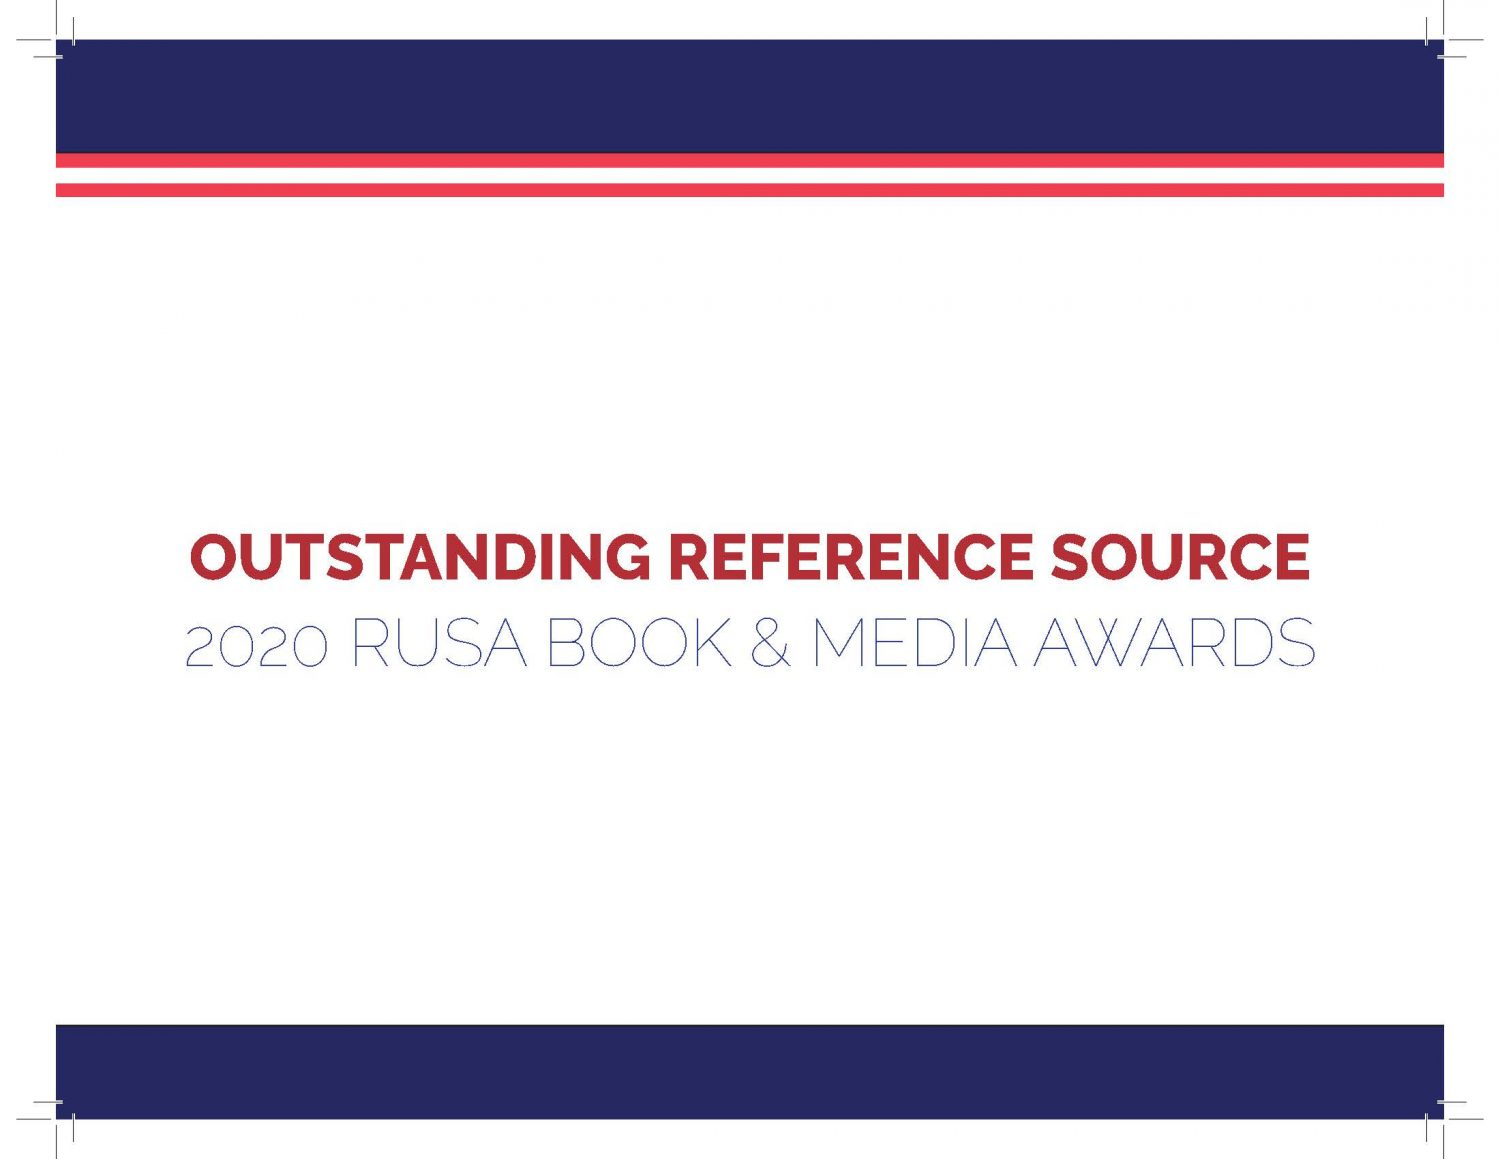 Reference experts announce annual Outstanding Reference Sources list for adults